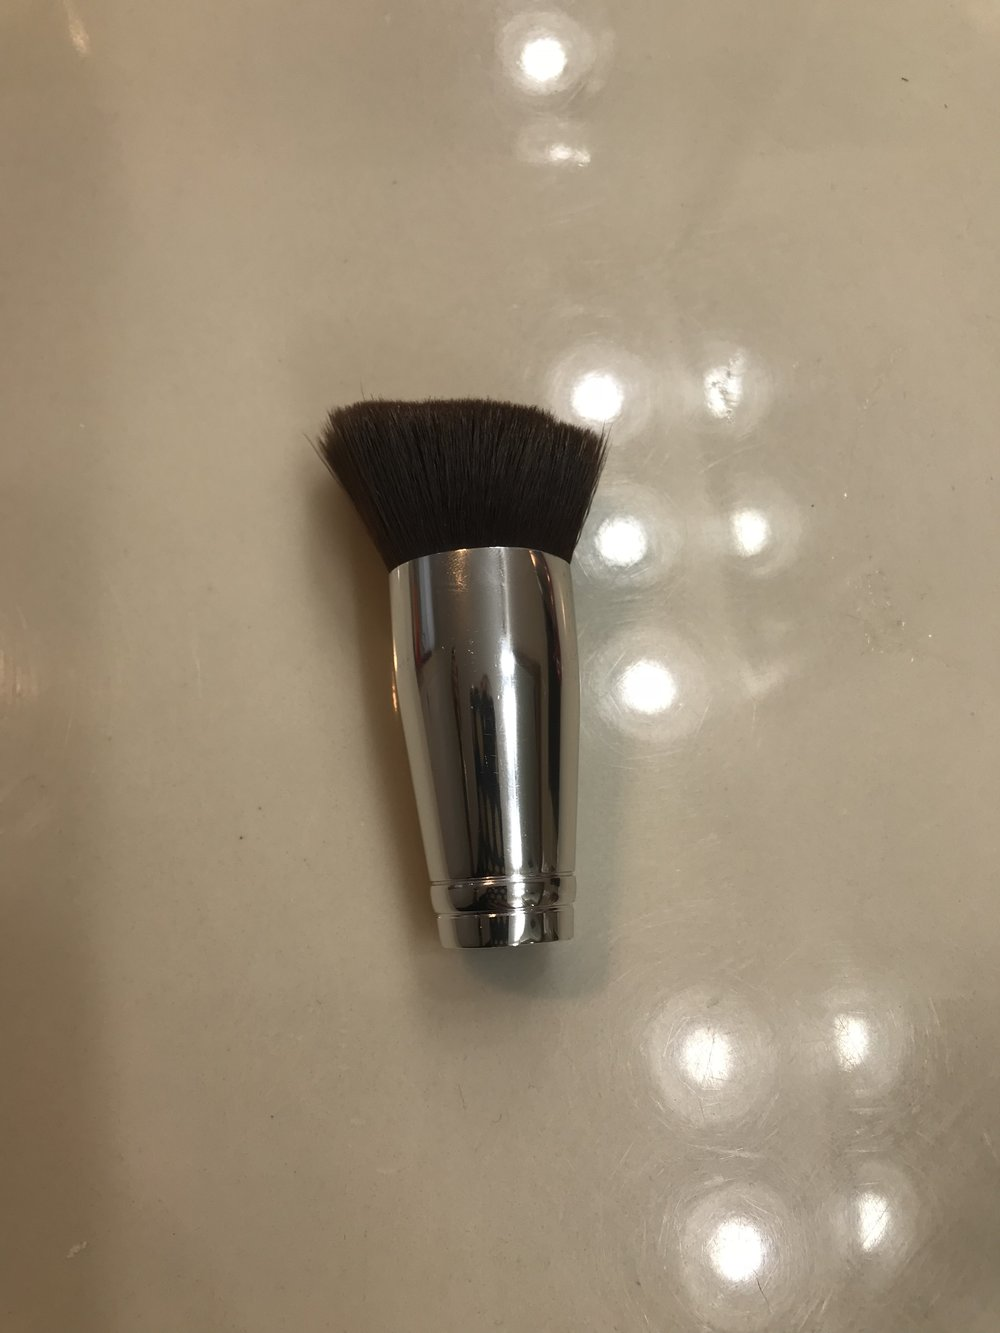 Broken Makeup Brush